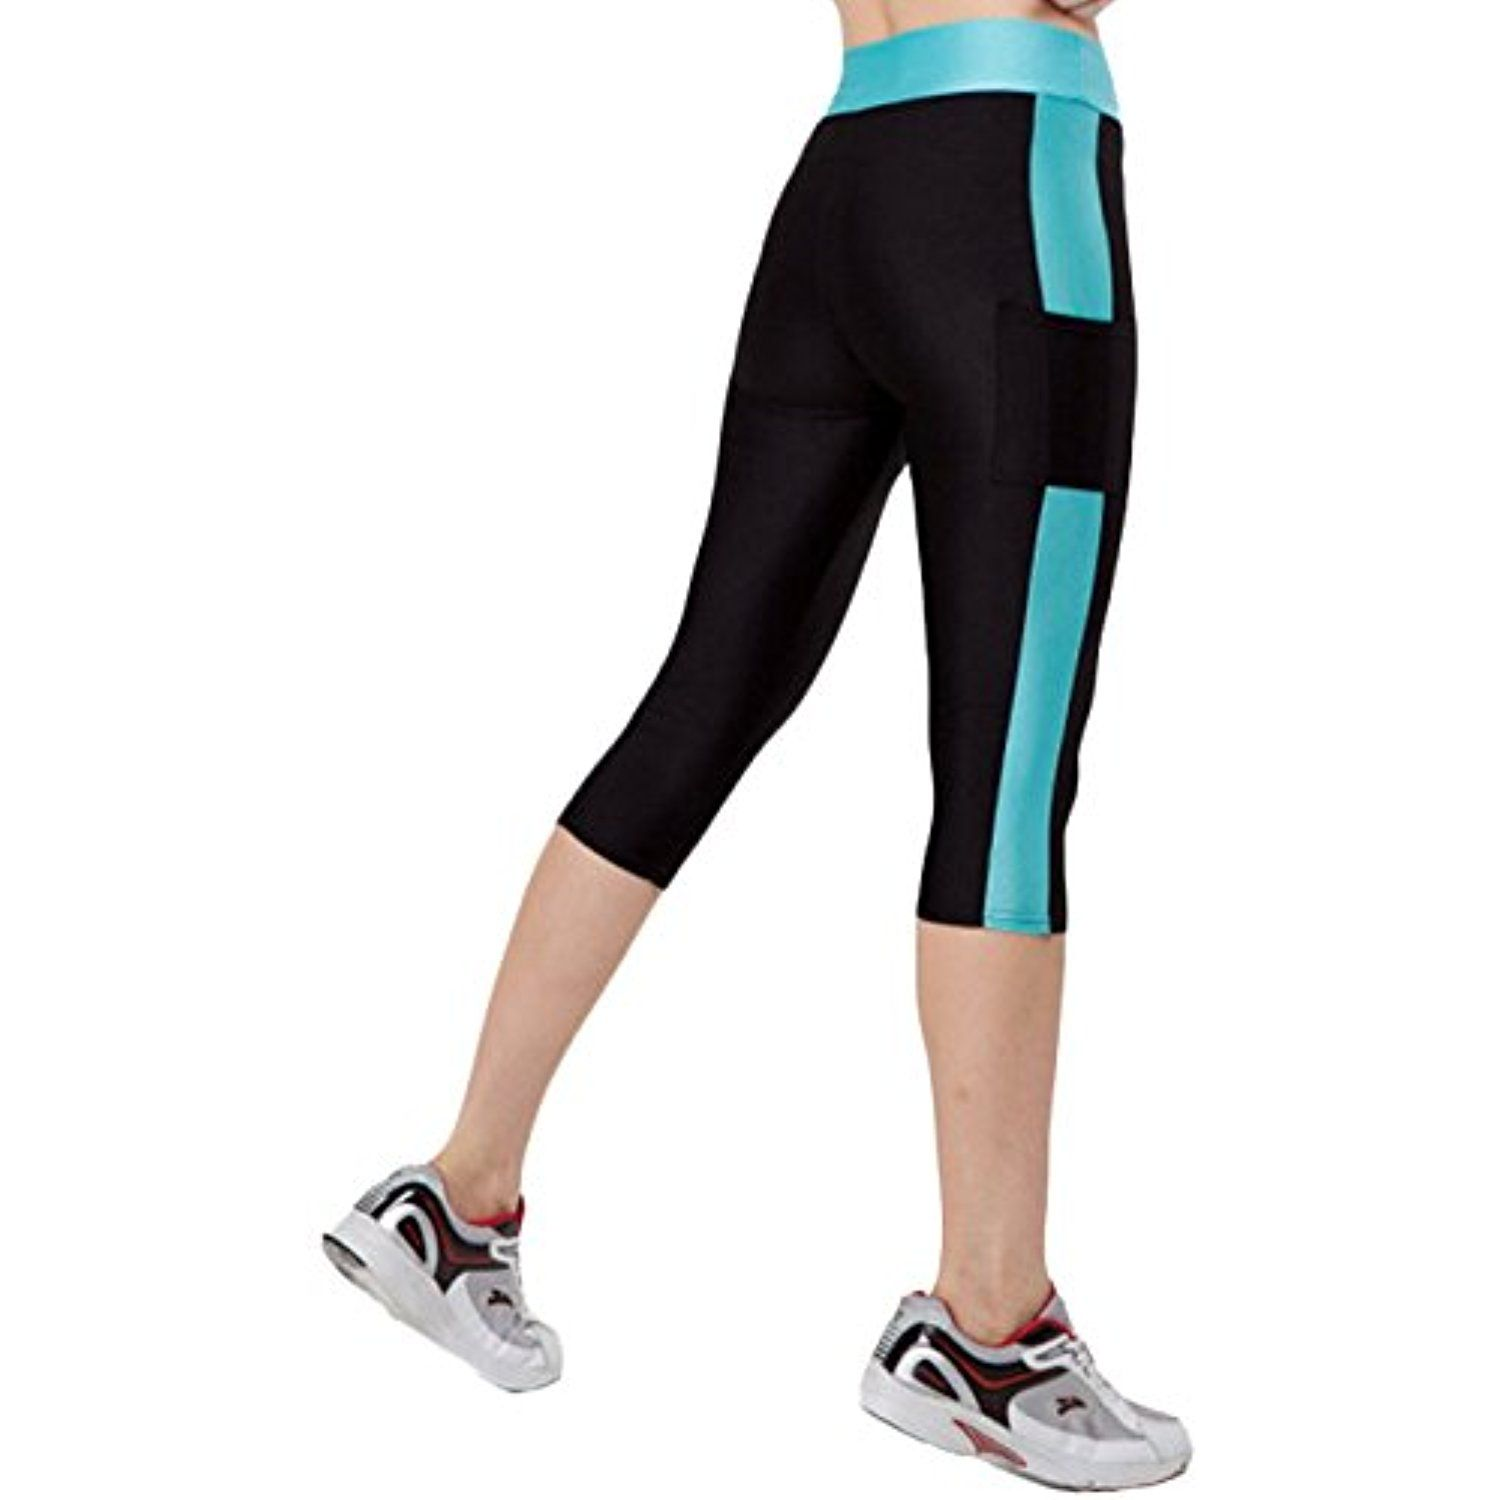 6a91992d5c4 AKENA Women Sports Running Stretch Leggings Slim Fitness with ...